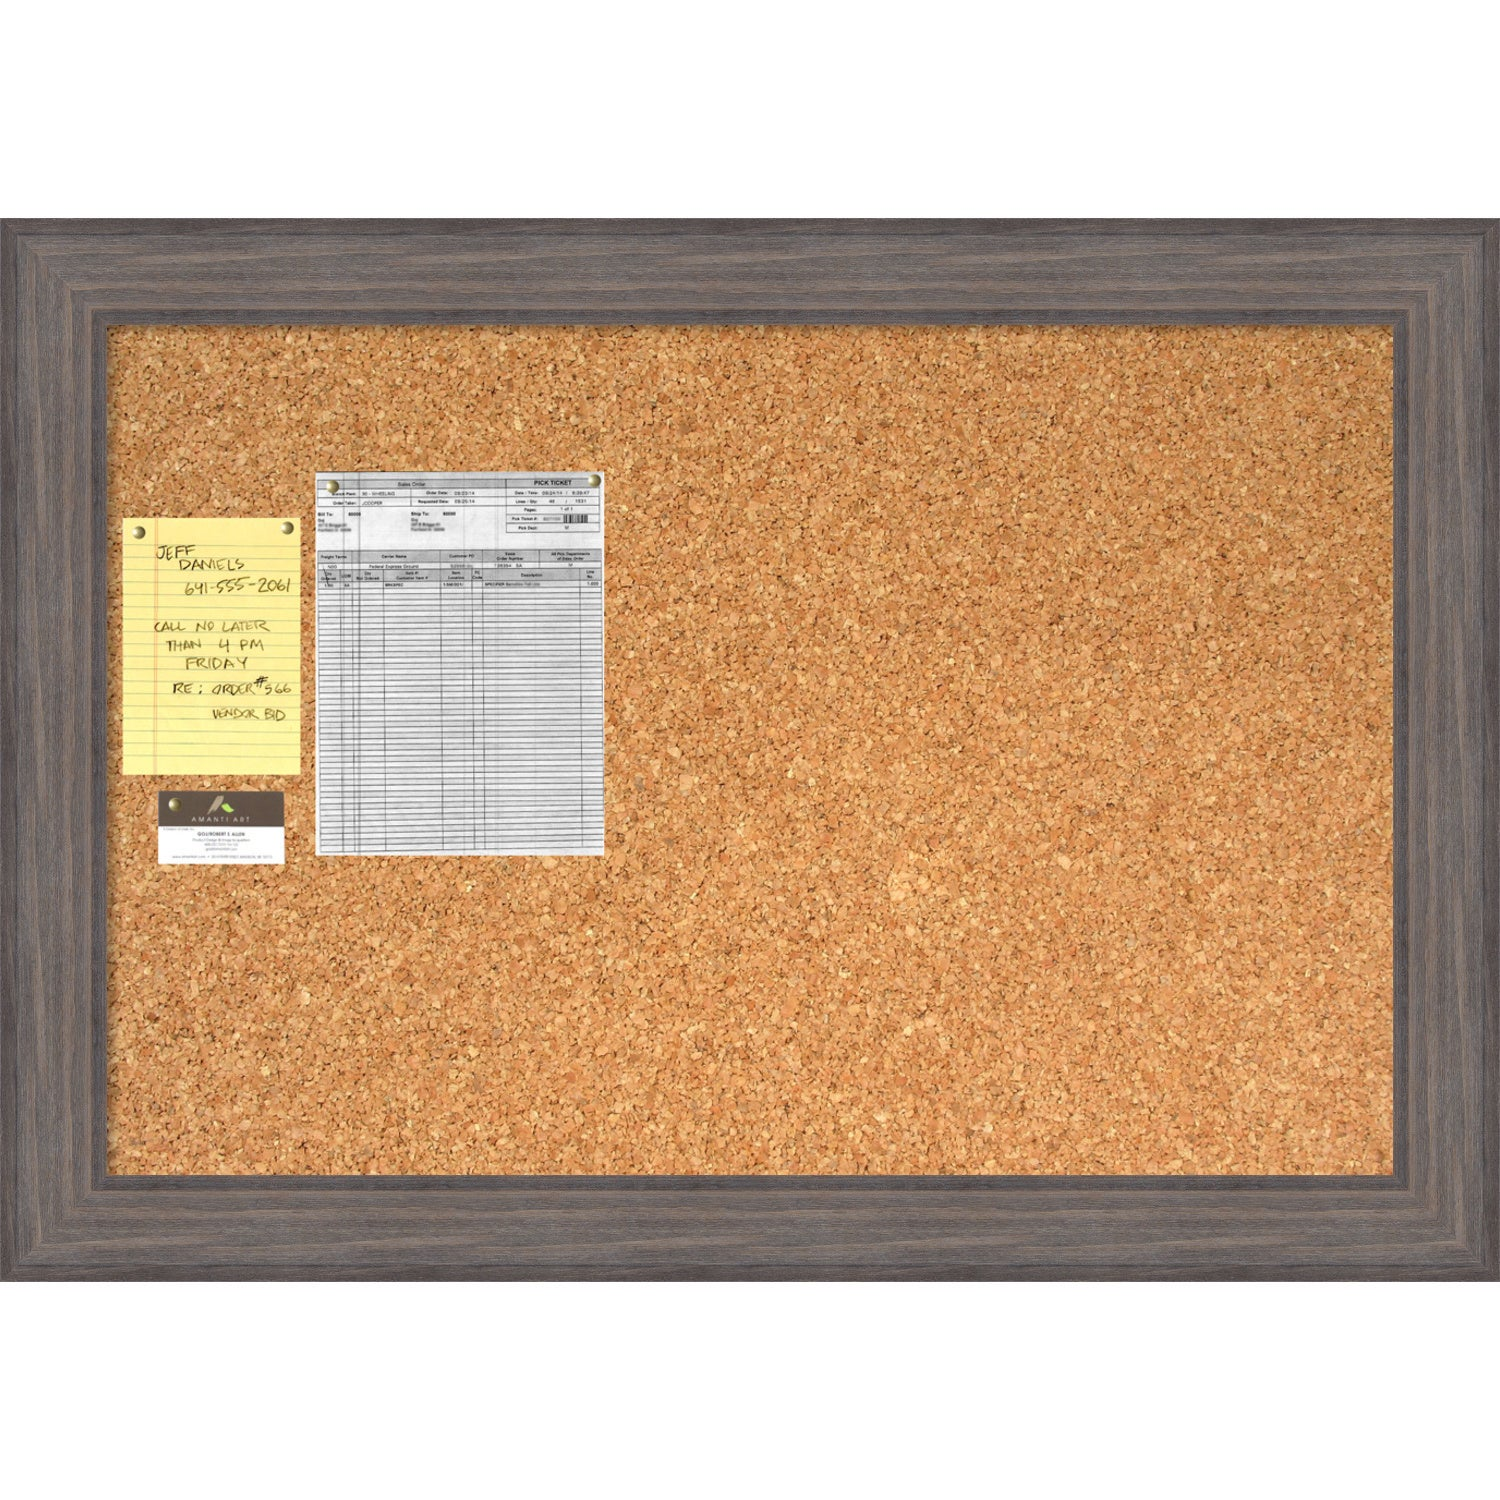 Country barnwood cork board large message board 41 x 29 inch country barnwood cork board large message board 41 x 29 inch free shipping today overstock 17510786 jeuxipadfo Gallery